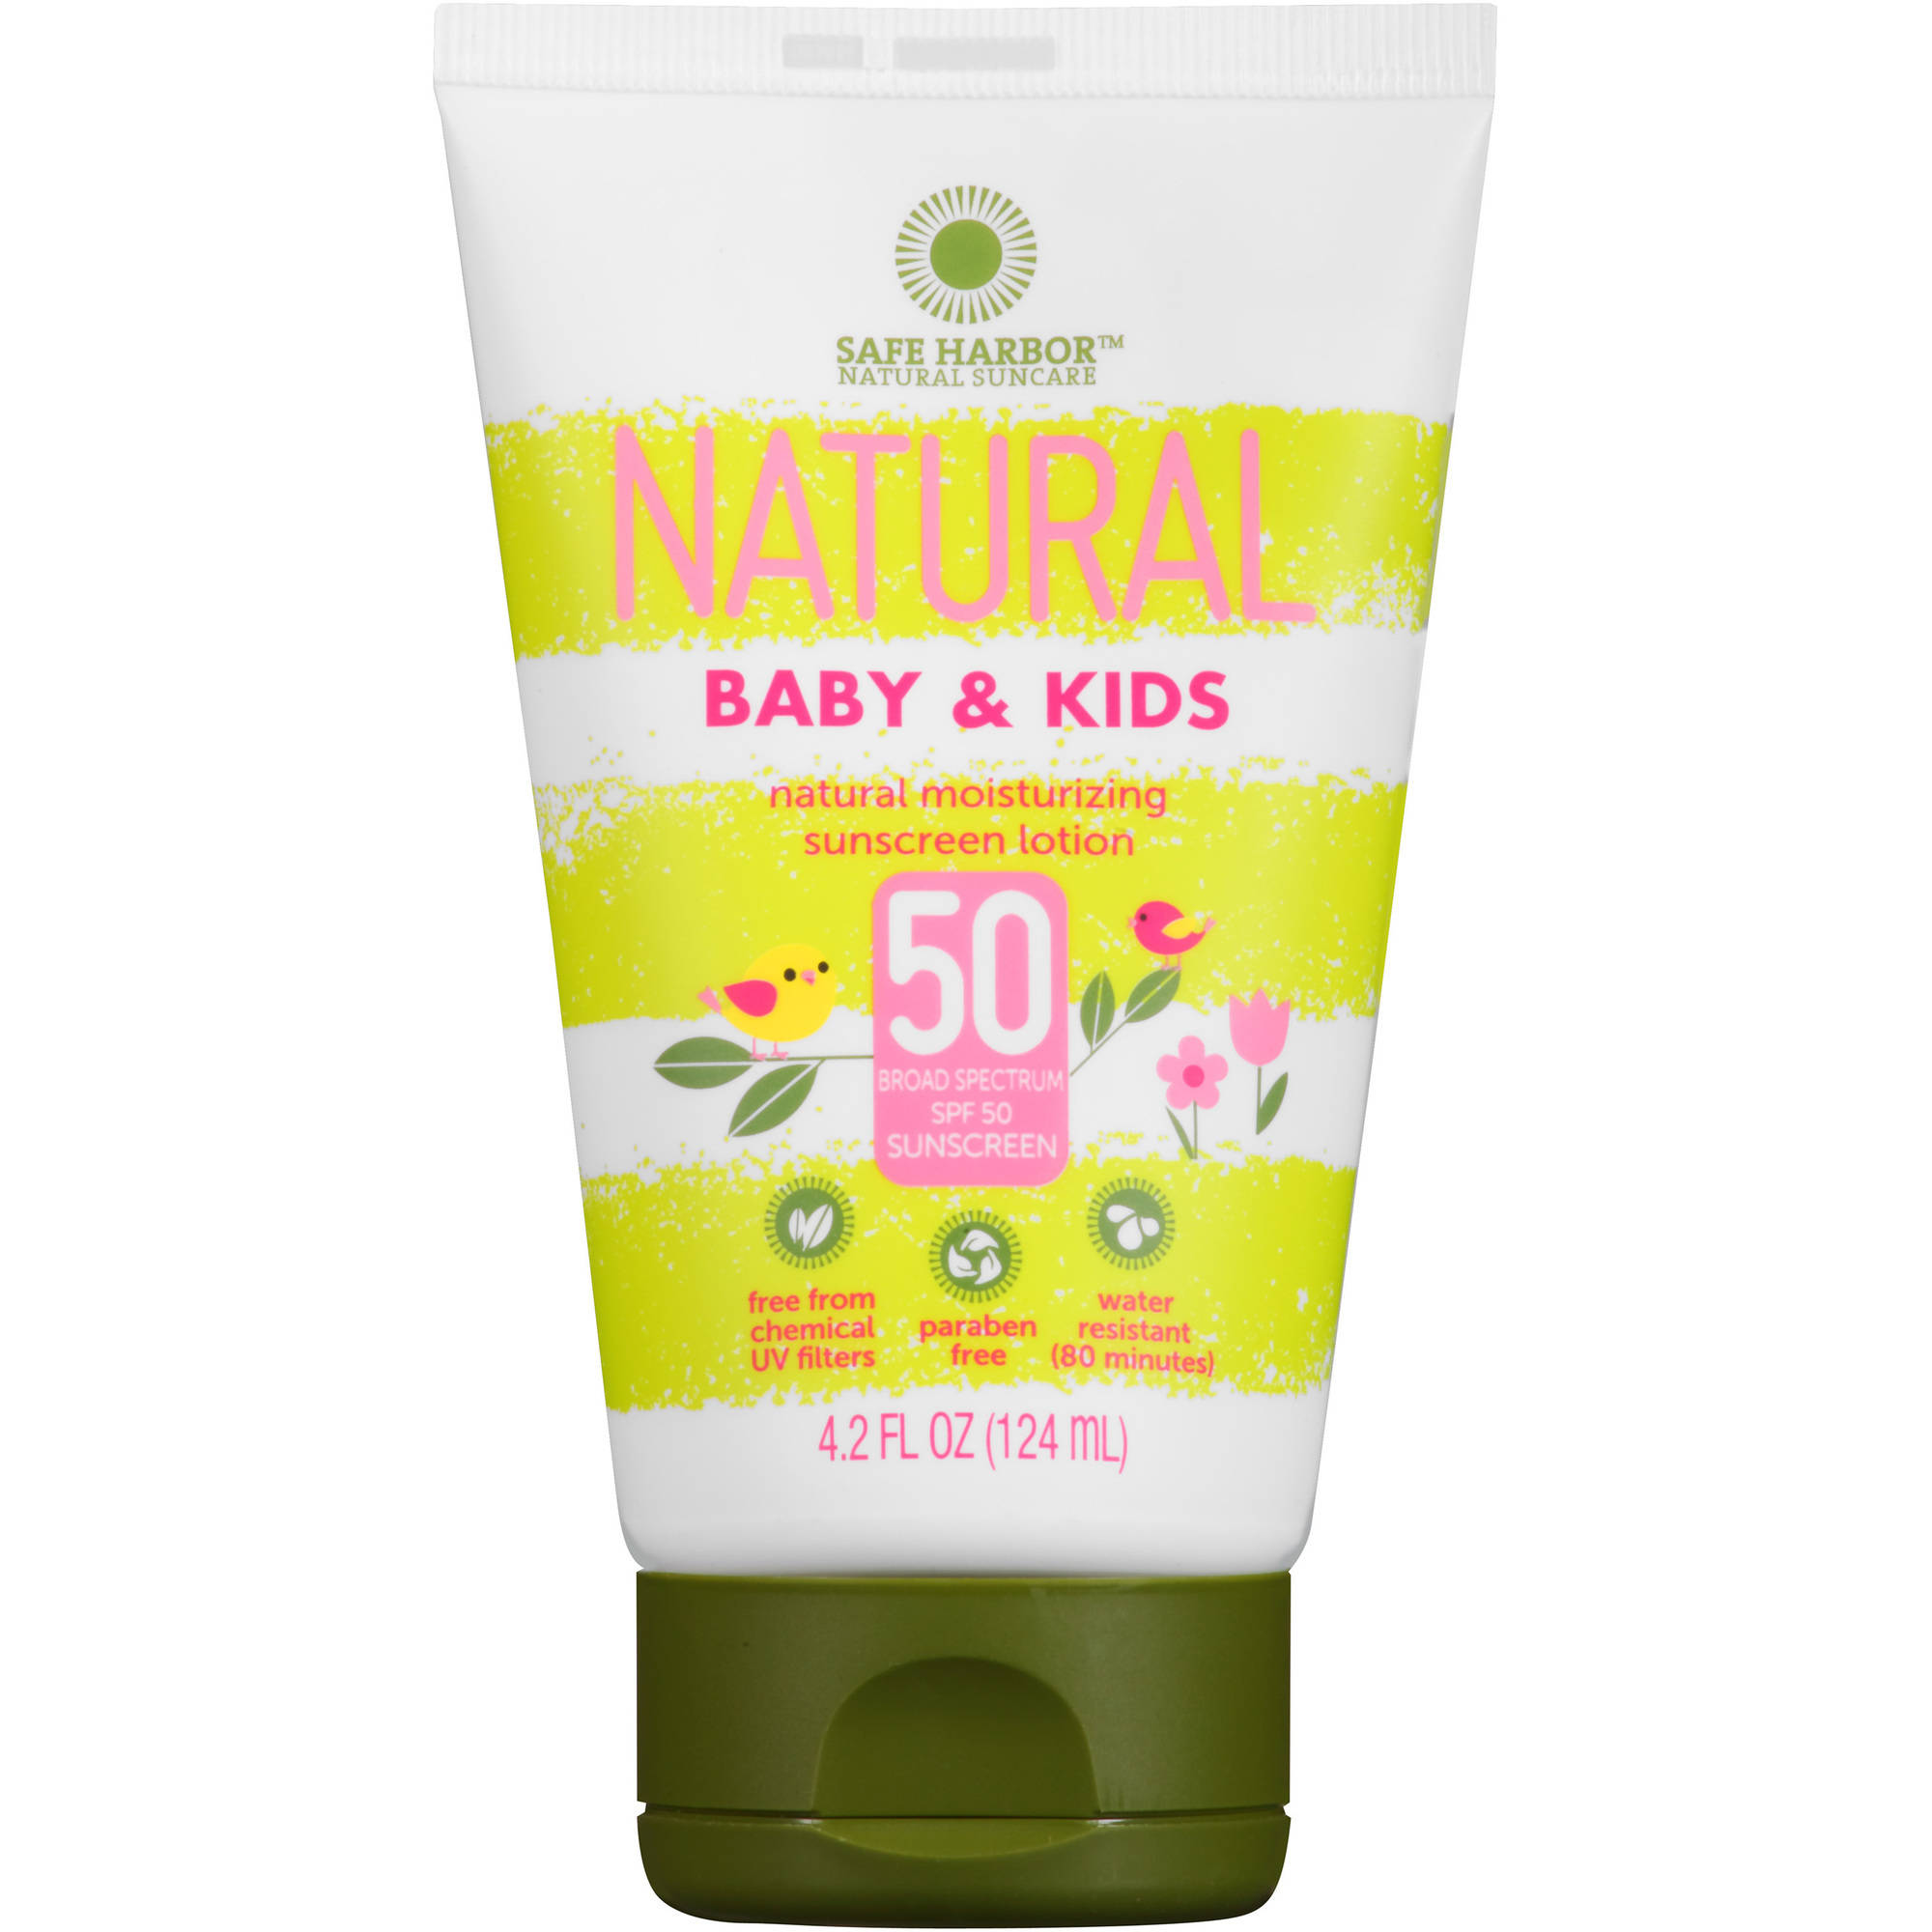 Safe Harbor Natural Baby & Kids Sunscreen Lotion, SPF 50, 4.2 fl oz